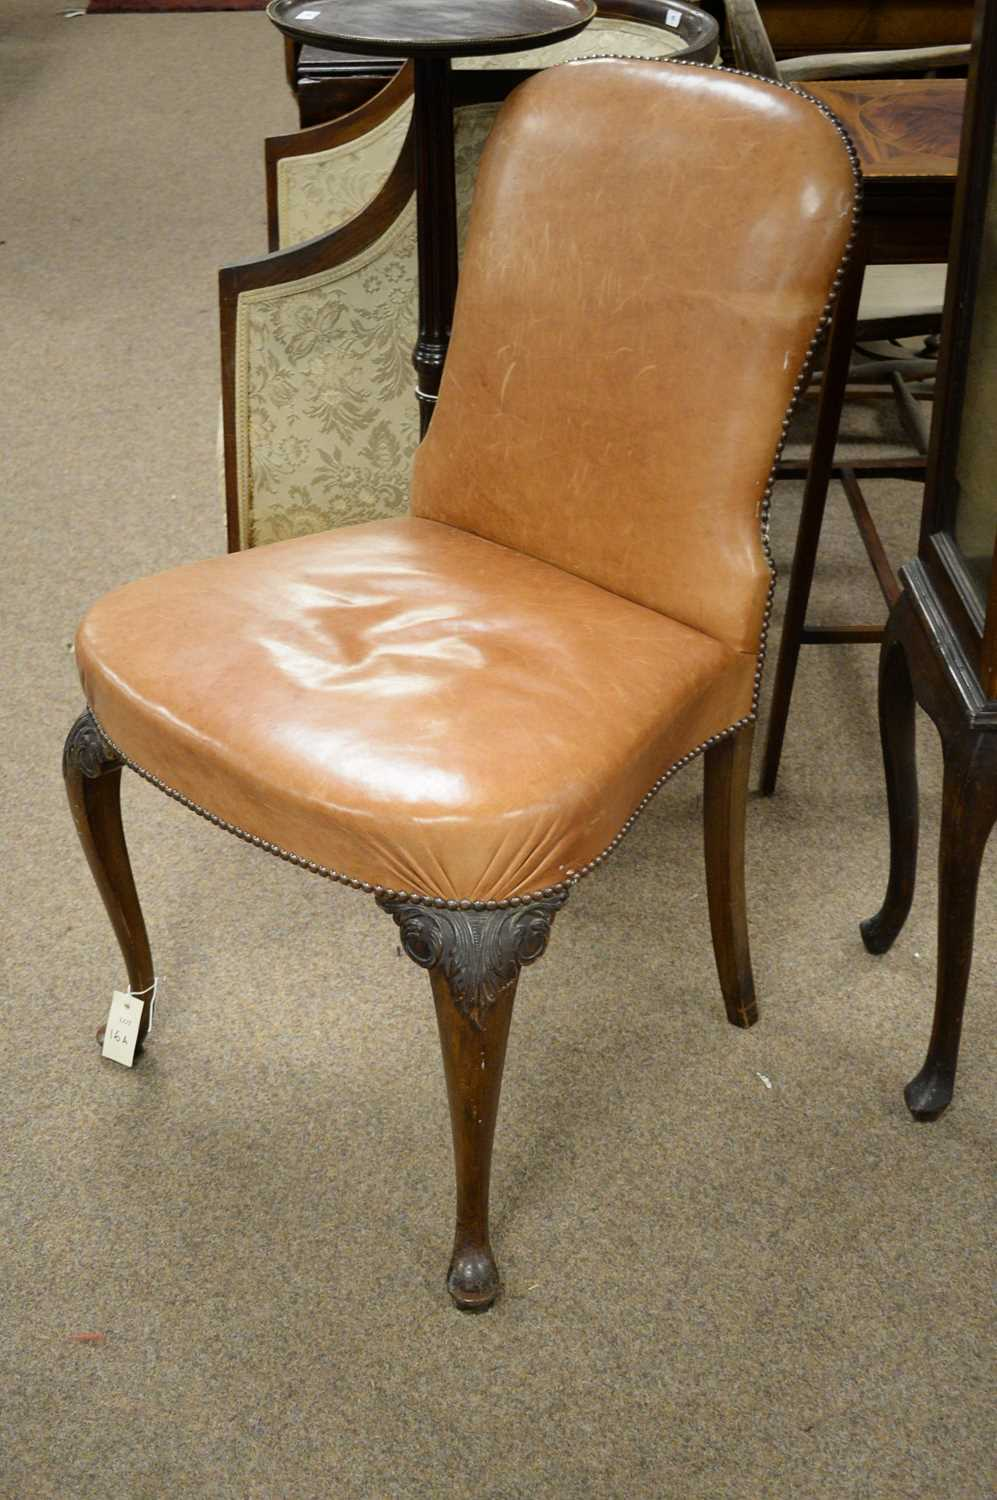 19th Century mahogany and leather dining chair - Image 3 of 3